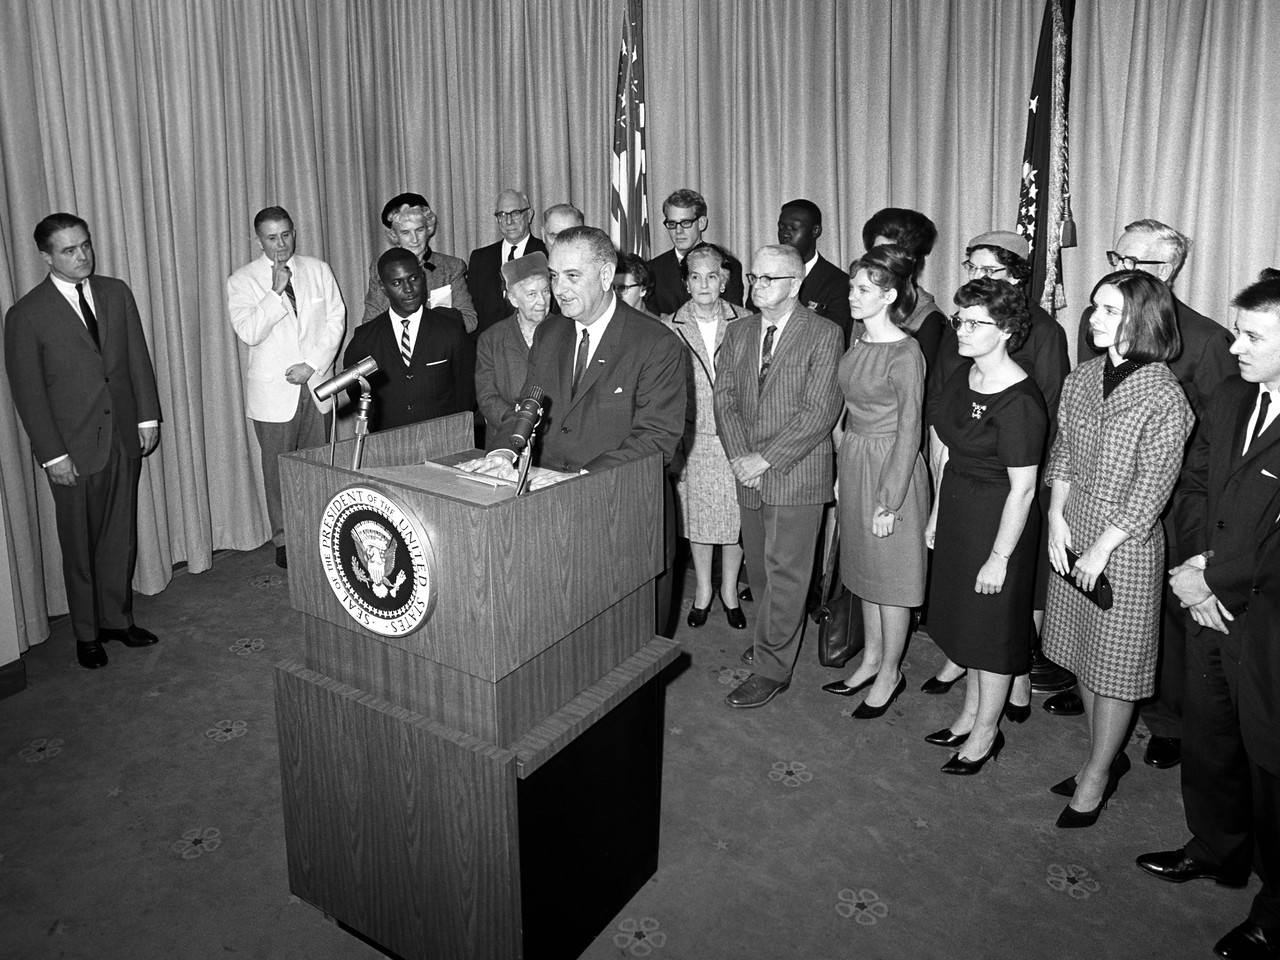 """On December 12, 1964, President Lyndon B. Johnson welcomed the first group of 20 VISTA volunteers with this advice: """"Your pay will be low; the conditions of your labor often will be difficult. But you will have the satisfaction of leading a great national effort and you will have the ultimate reward which comes to those who serve their fellow man."""" (© 1964 Corporation for National and Community Service - Office of Public Affairs) Corporation for National and Community Service Photo."""